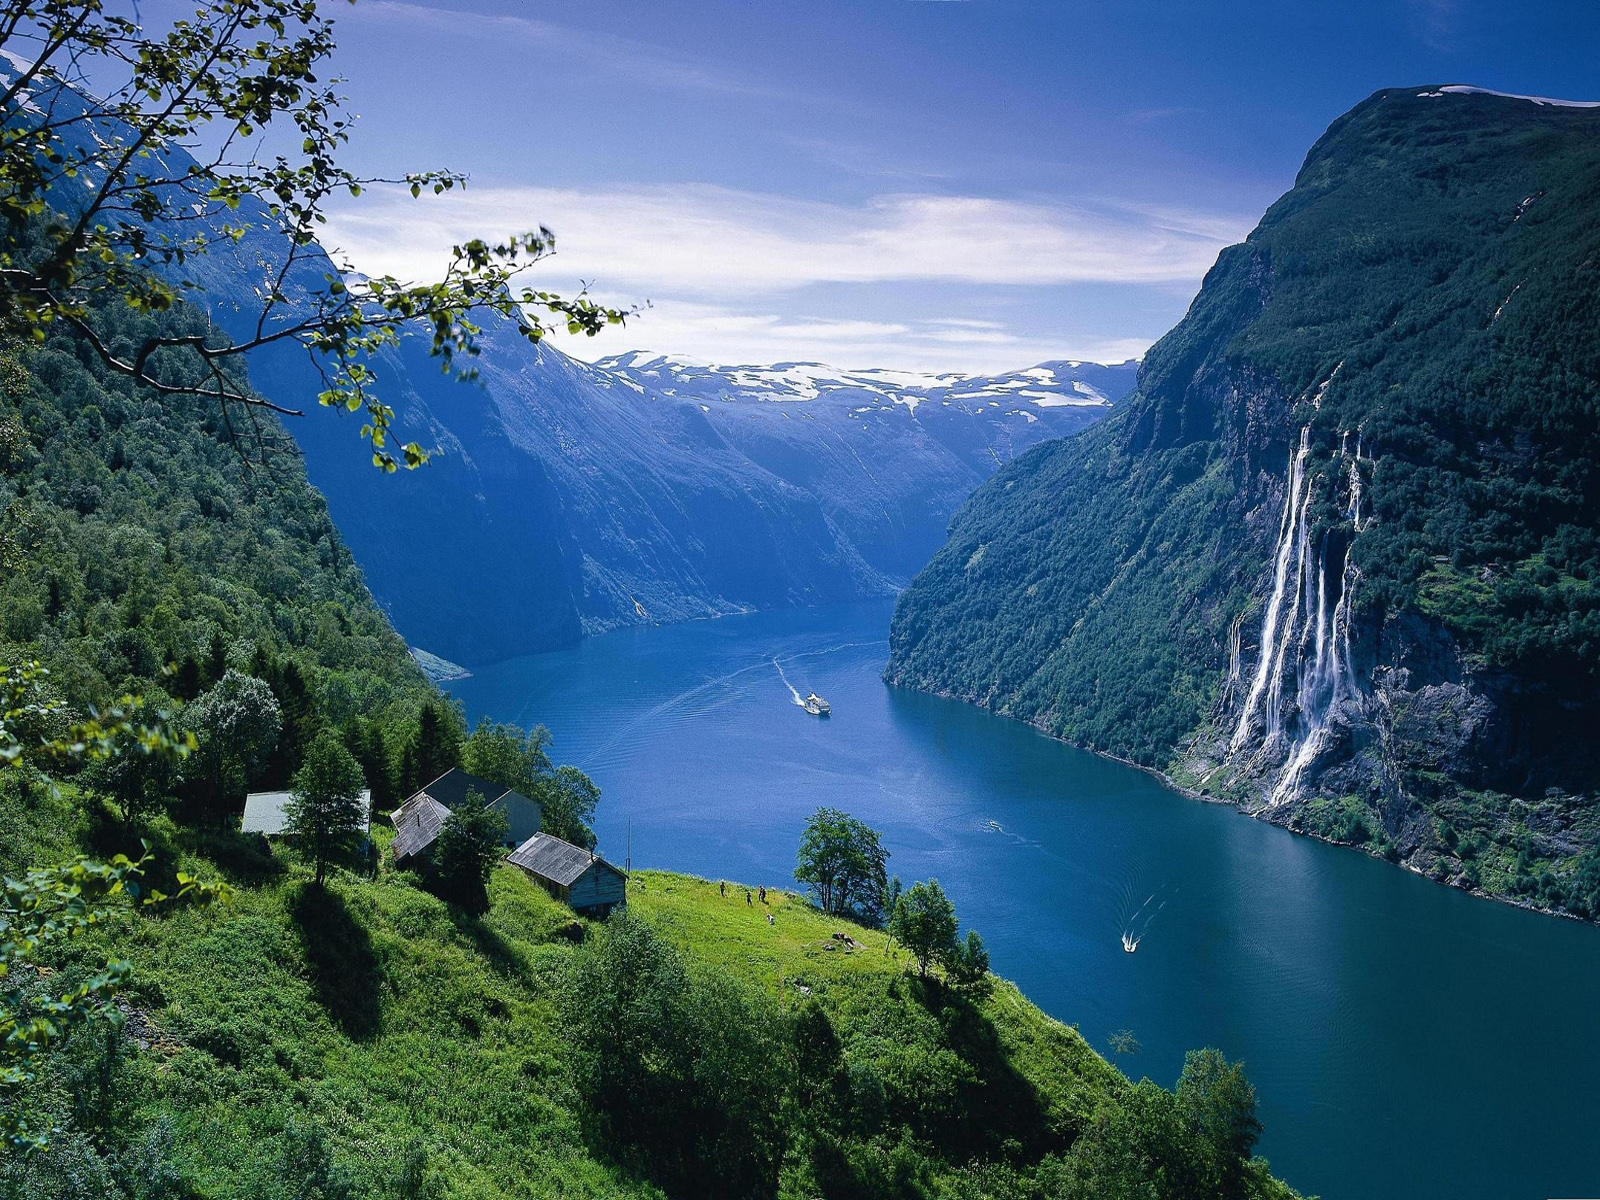 Norway stream beautiful image hd wallpapers for backgrounds full